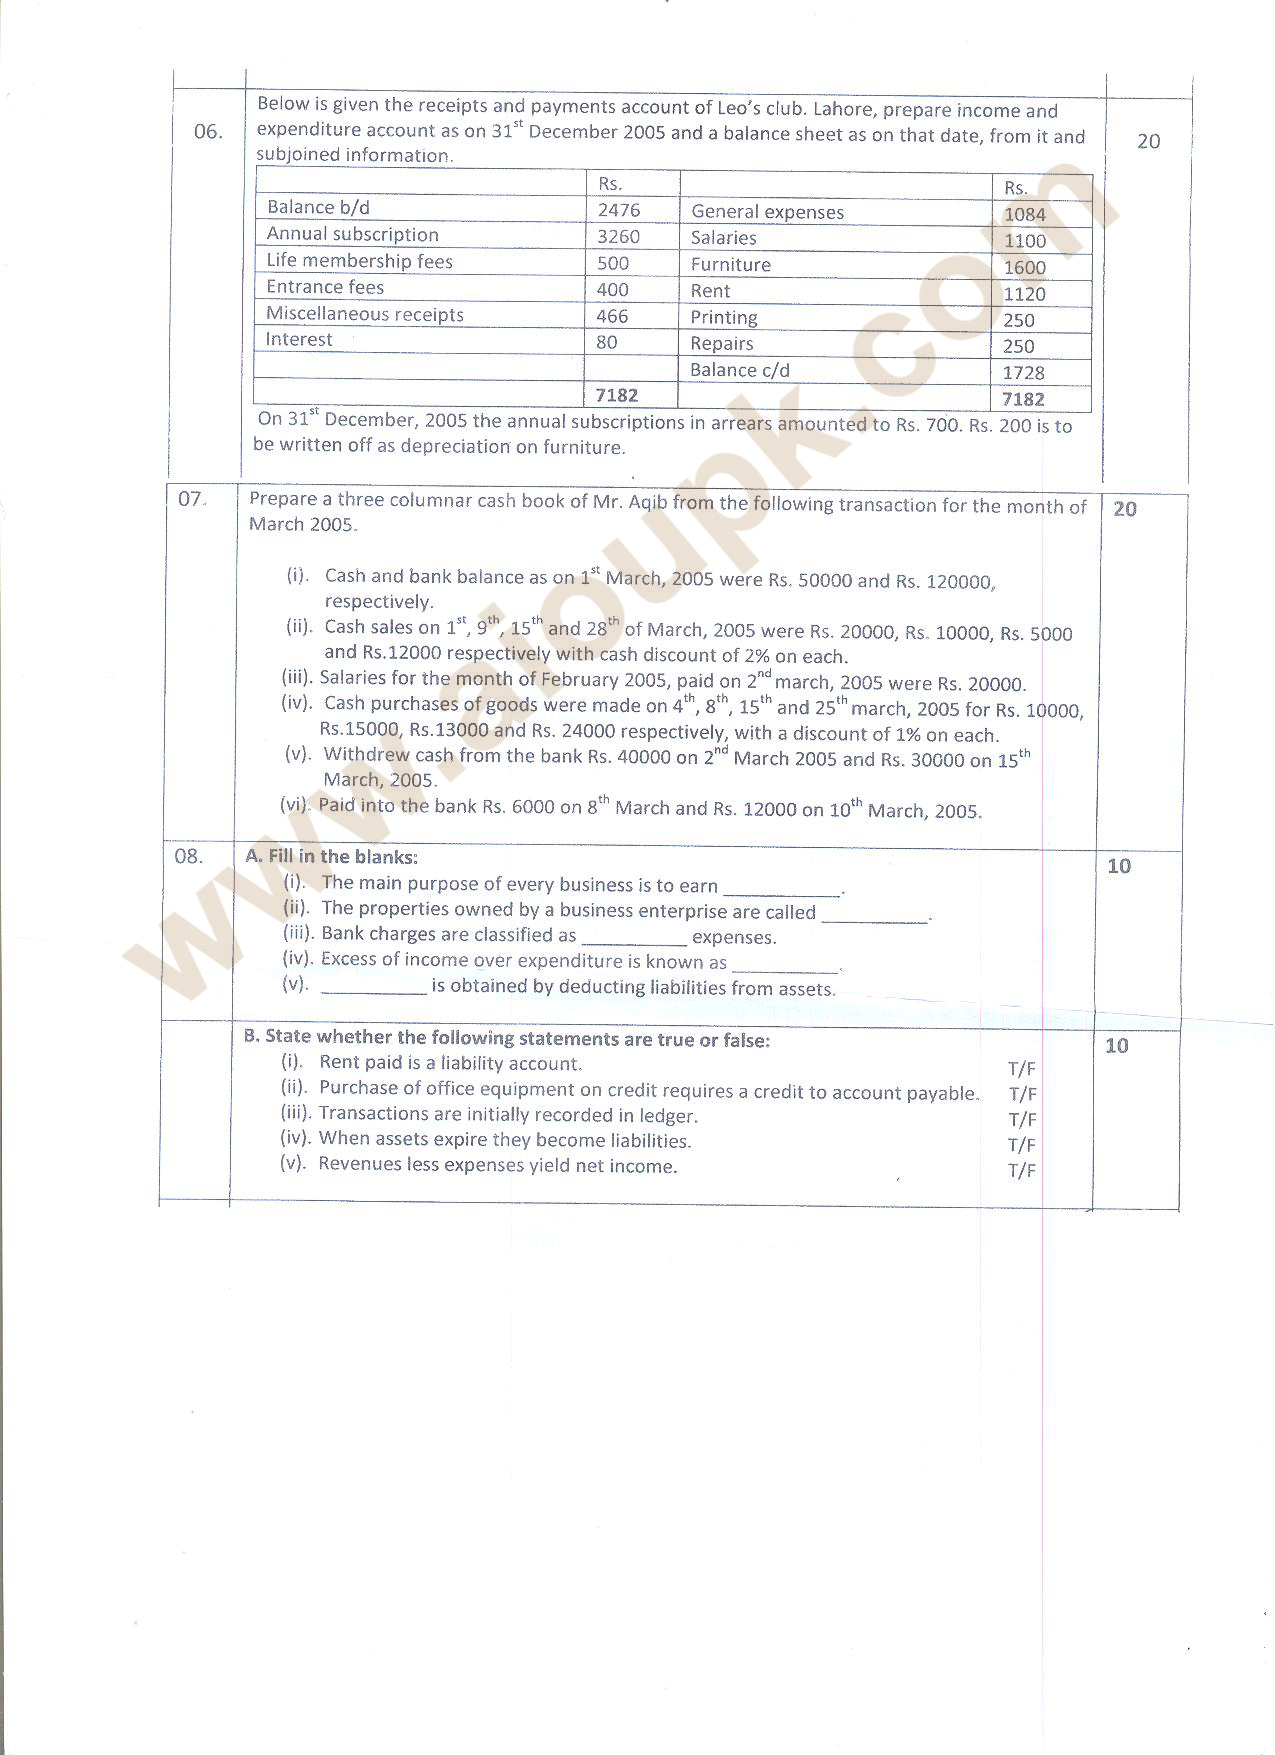 principles of accounts past paper 2013 cxc past papers accounts answerespdf free download here cxc csec principles of accounts exam may/june 2013 .